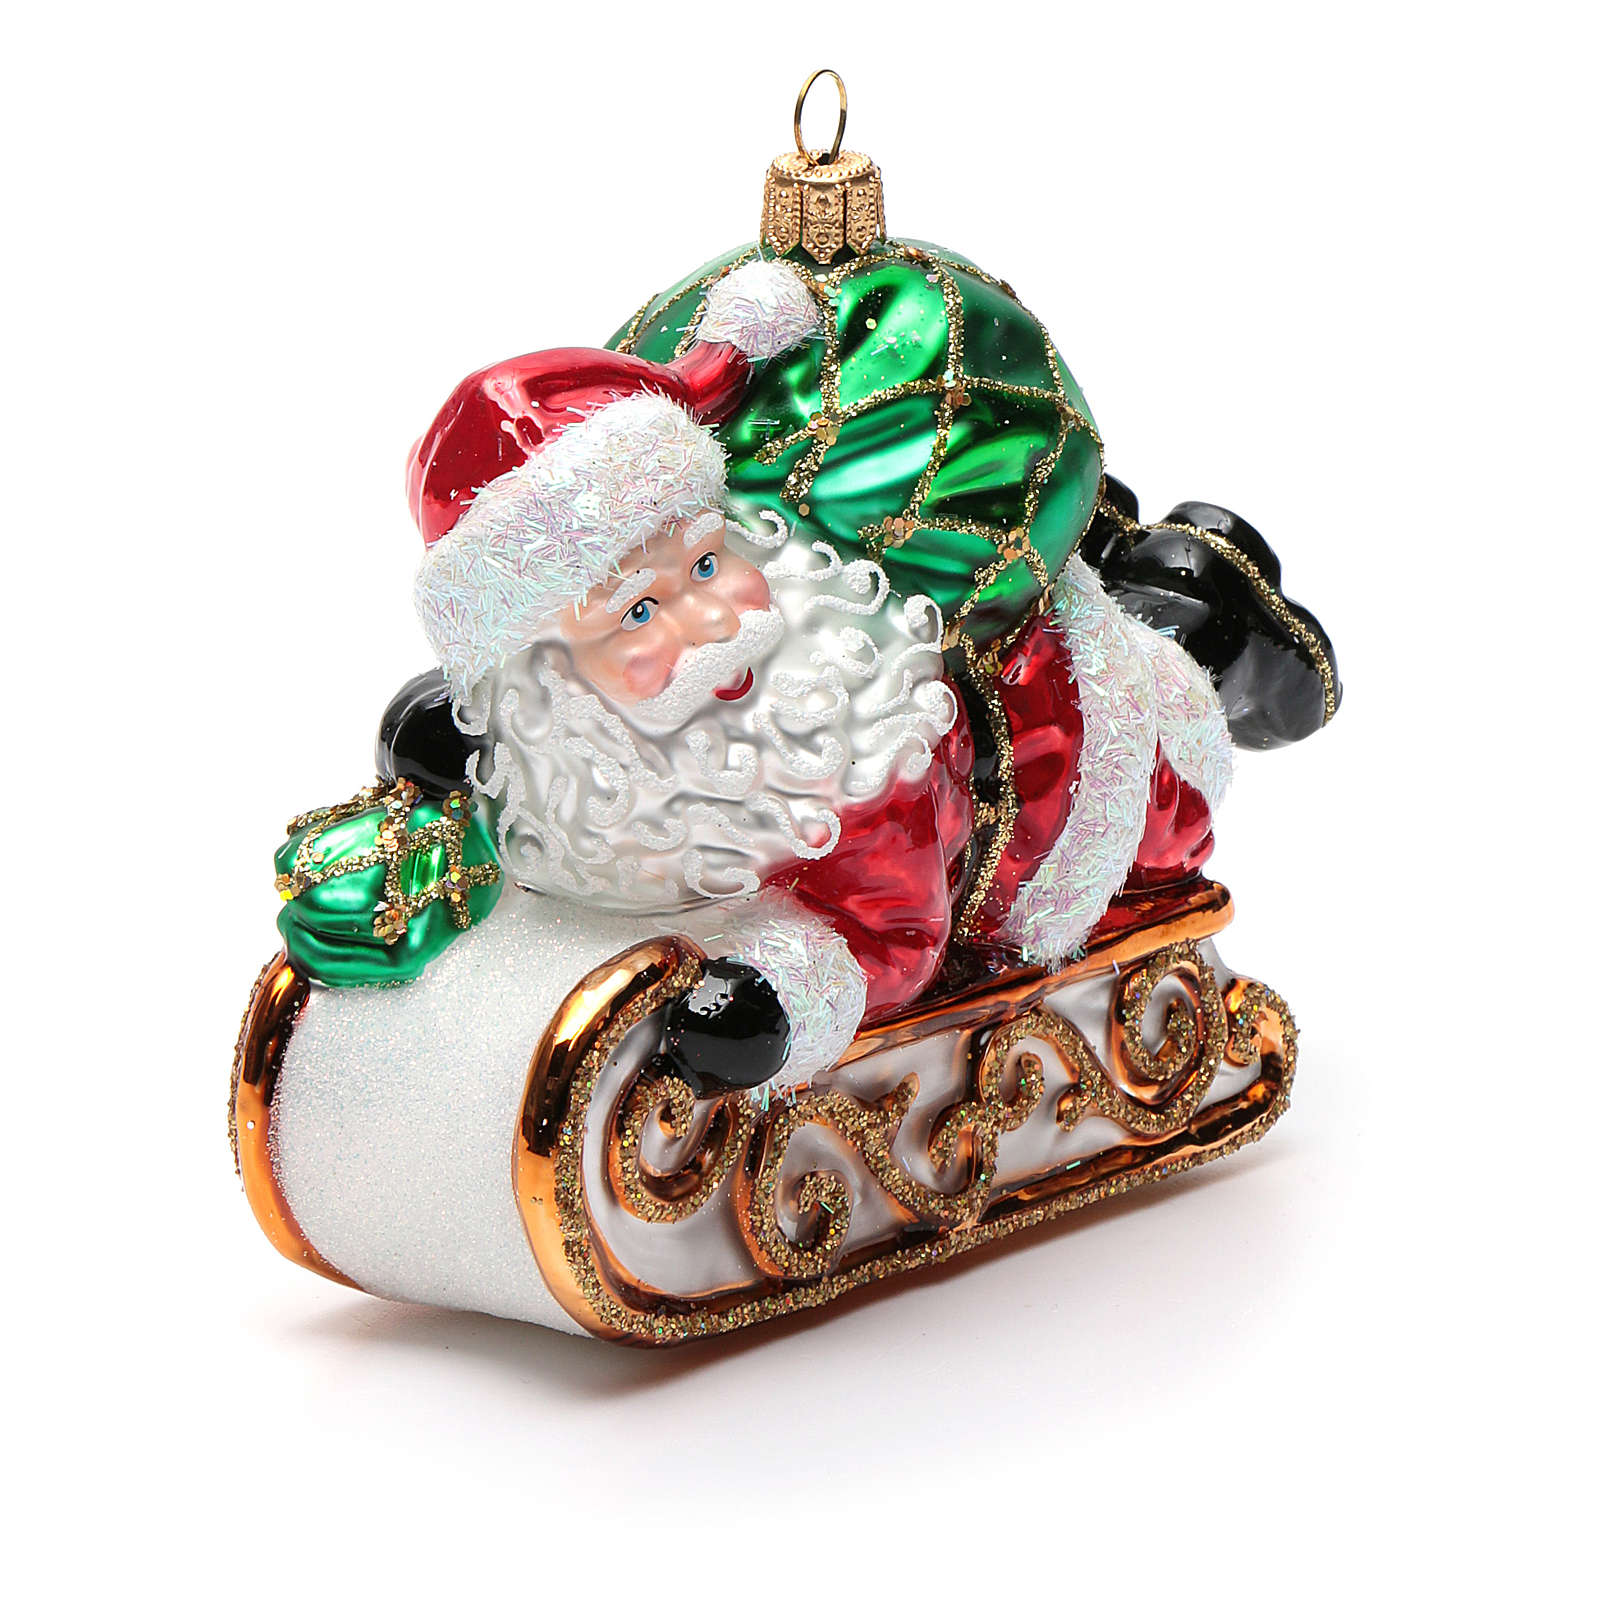 Blown glass Christmas ornament, Santa Claus with sled 4